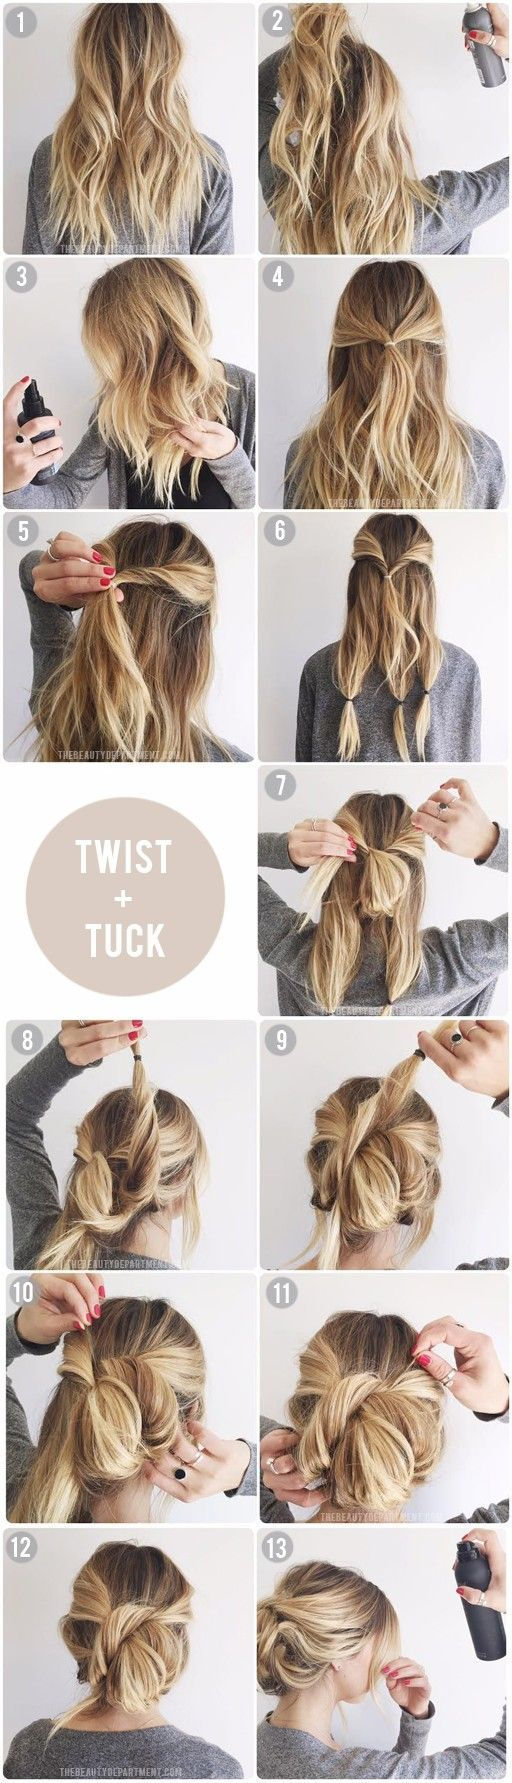 22 best 헤어 images on Pinterest | Hair ideas, Hairstyle ideas and ...